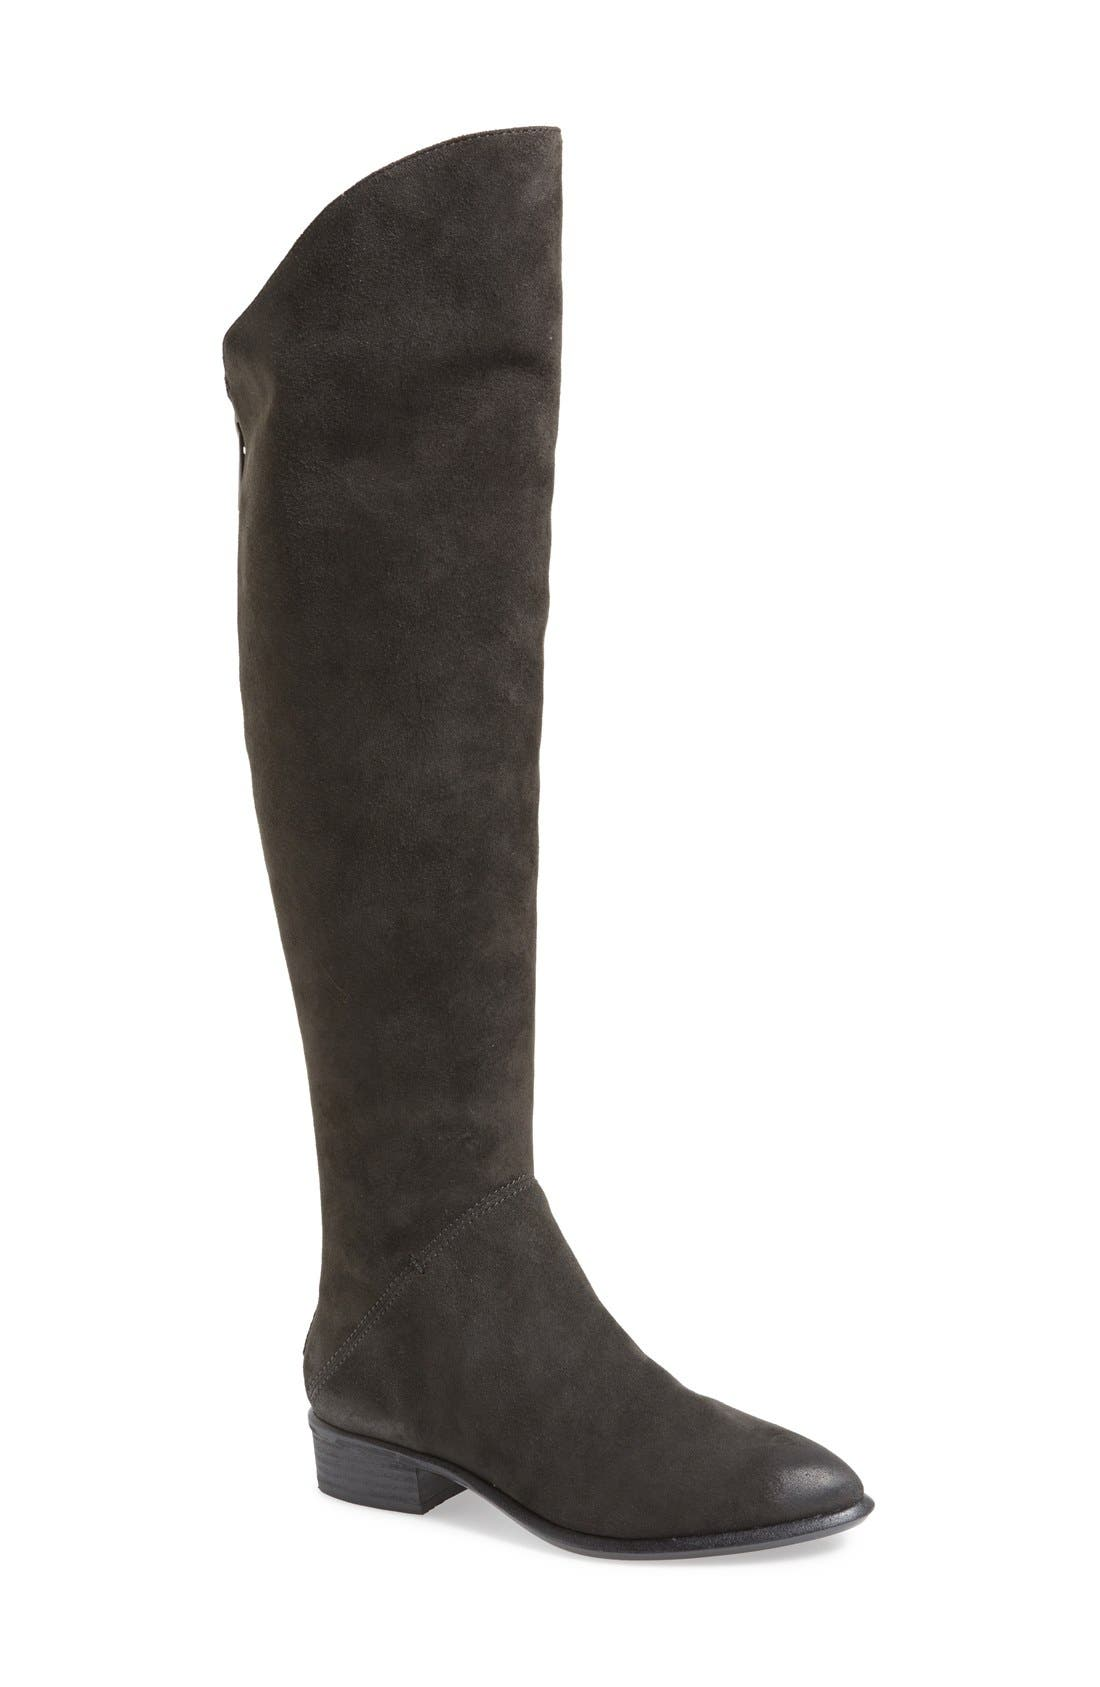 Alternate Image 1 Selected - Dolce Vita 'Meris' Boot (Women)